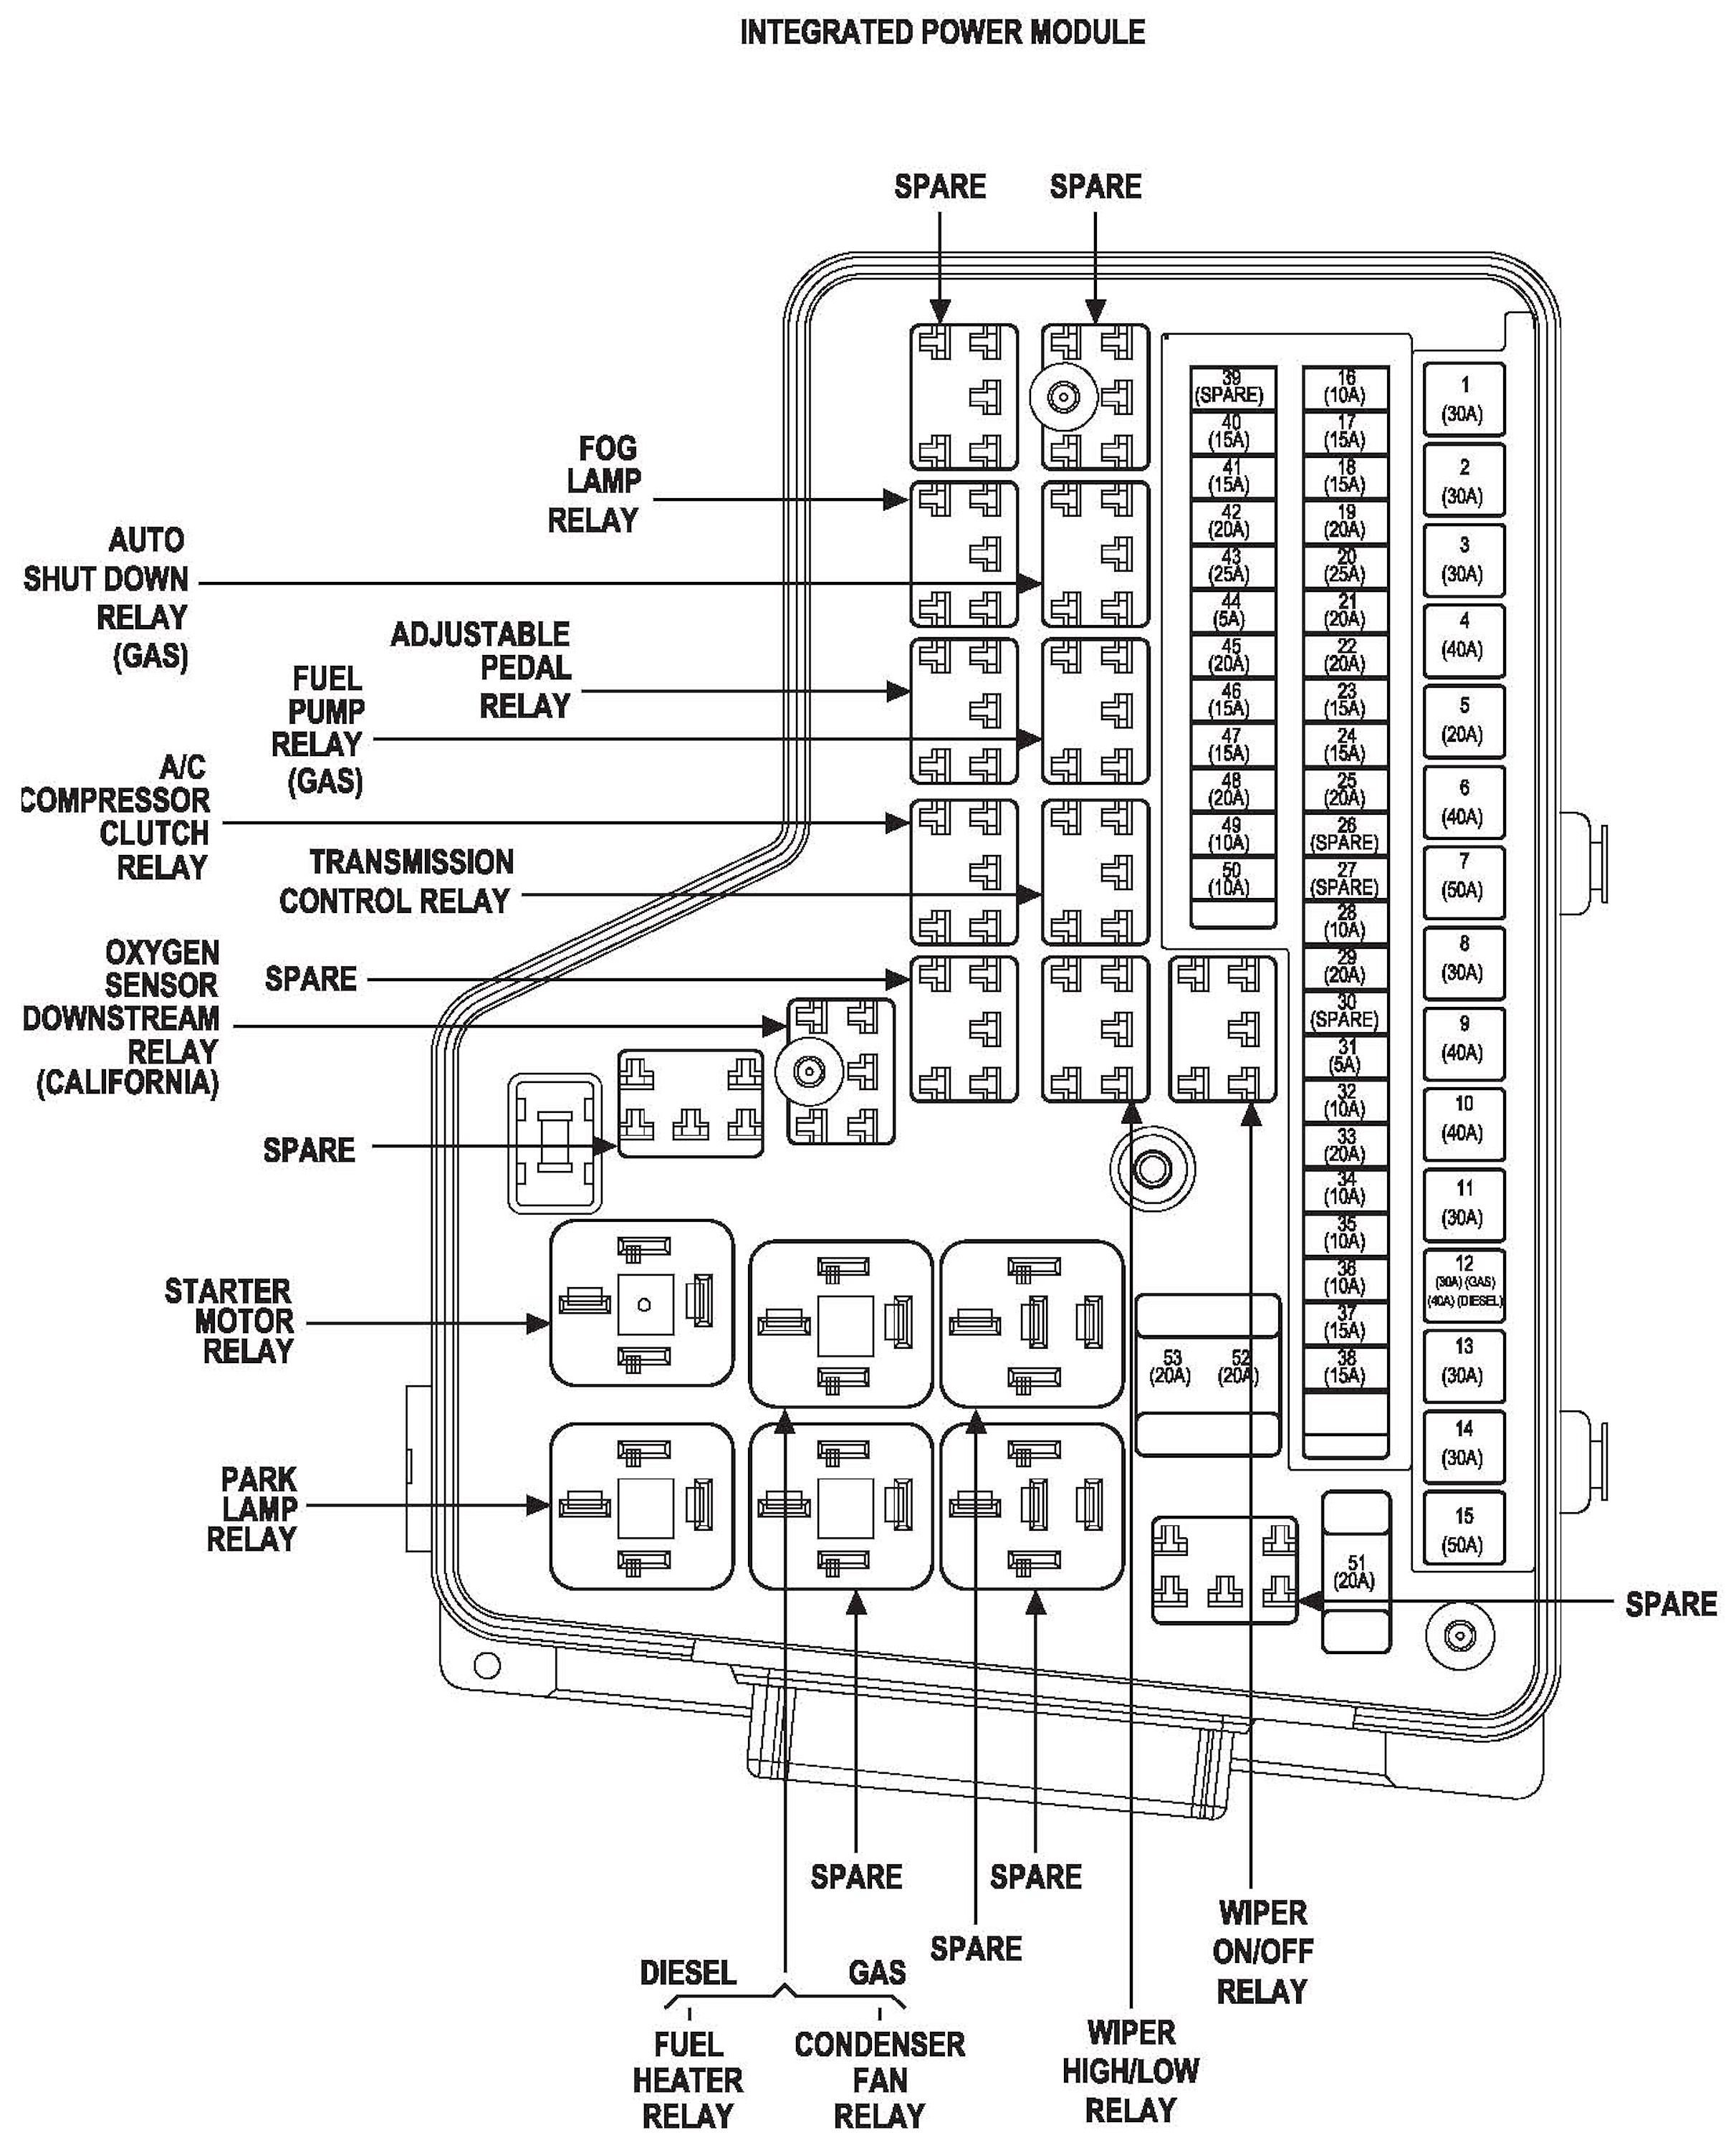 DIAGRAM] Gealeague Today Wiring Dodge Fuse Box FULL Version HD Quality Fuse  Box - B6500FUSER1294.SWEVAT.IT